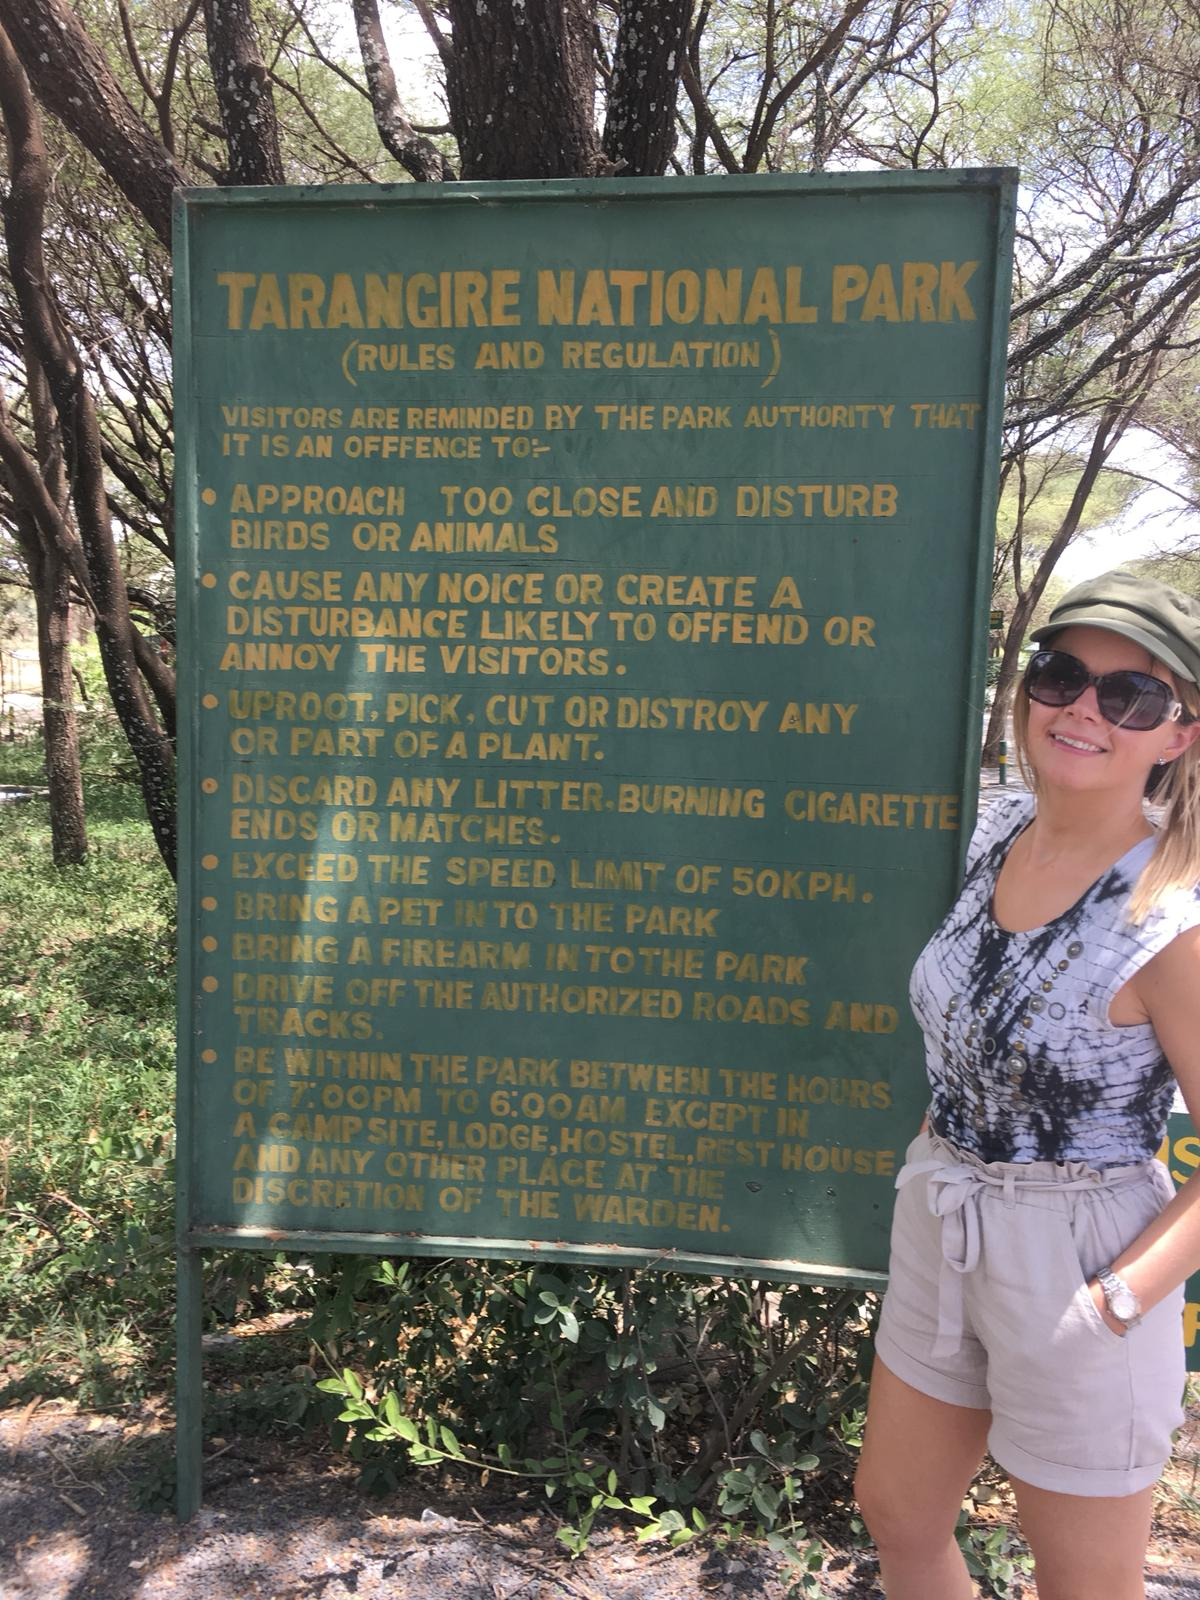 Tarangire National Park | Lisa's African Adventure | Erne Travel